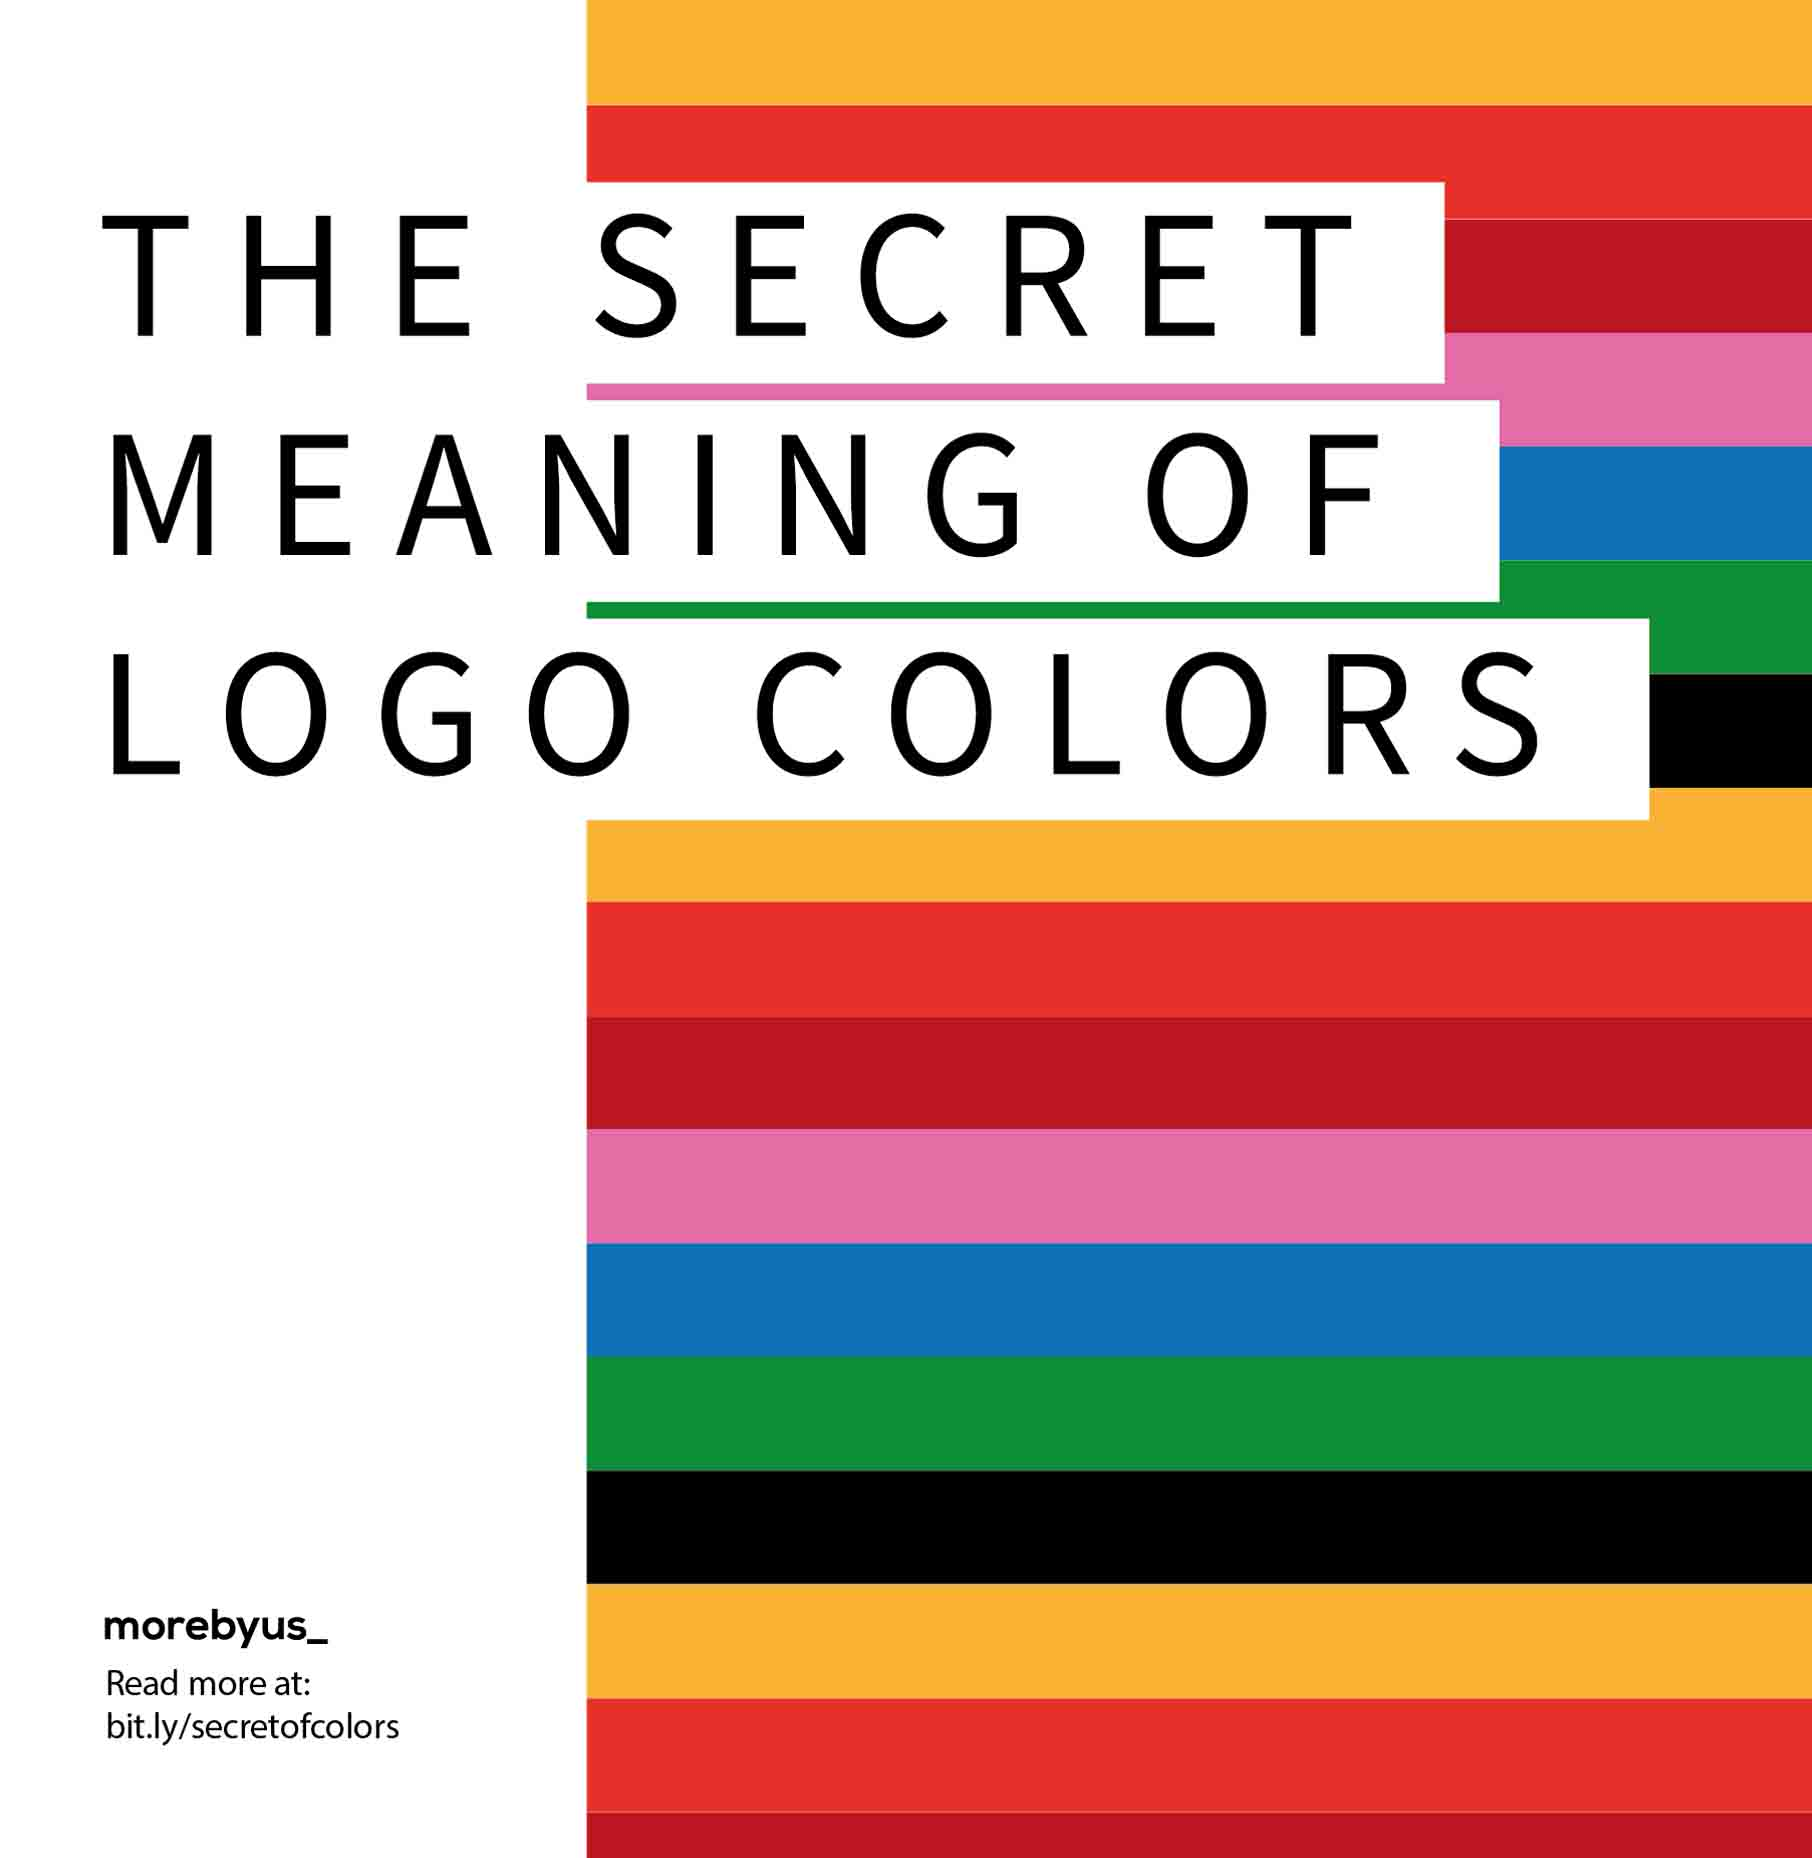 The Secret Meaning Of Logo Colors - Cover